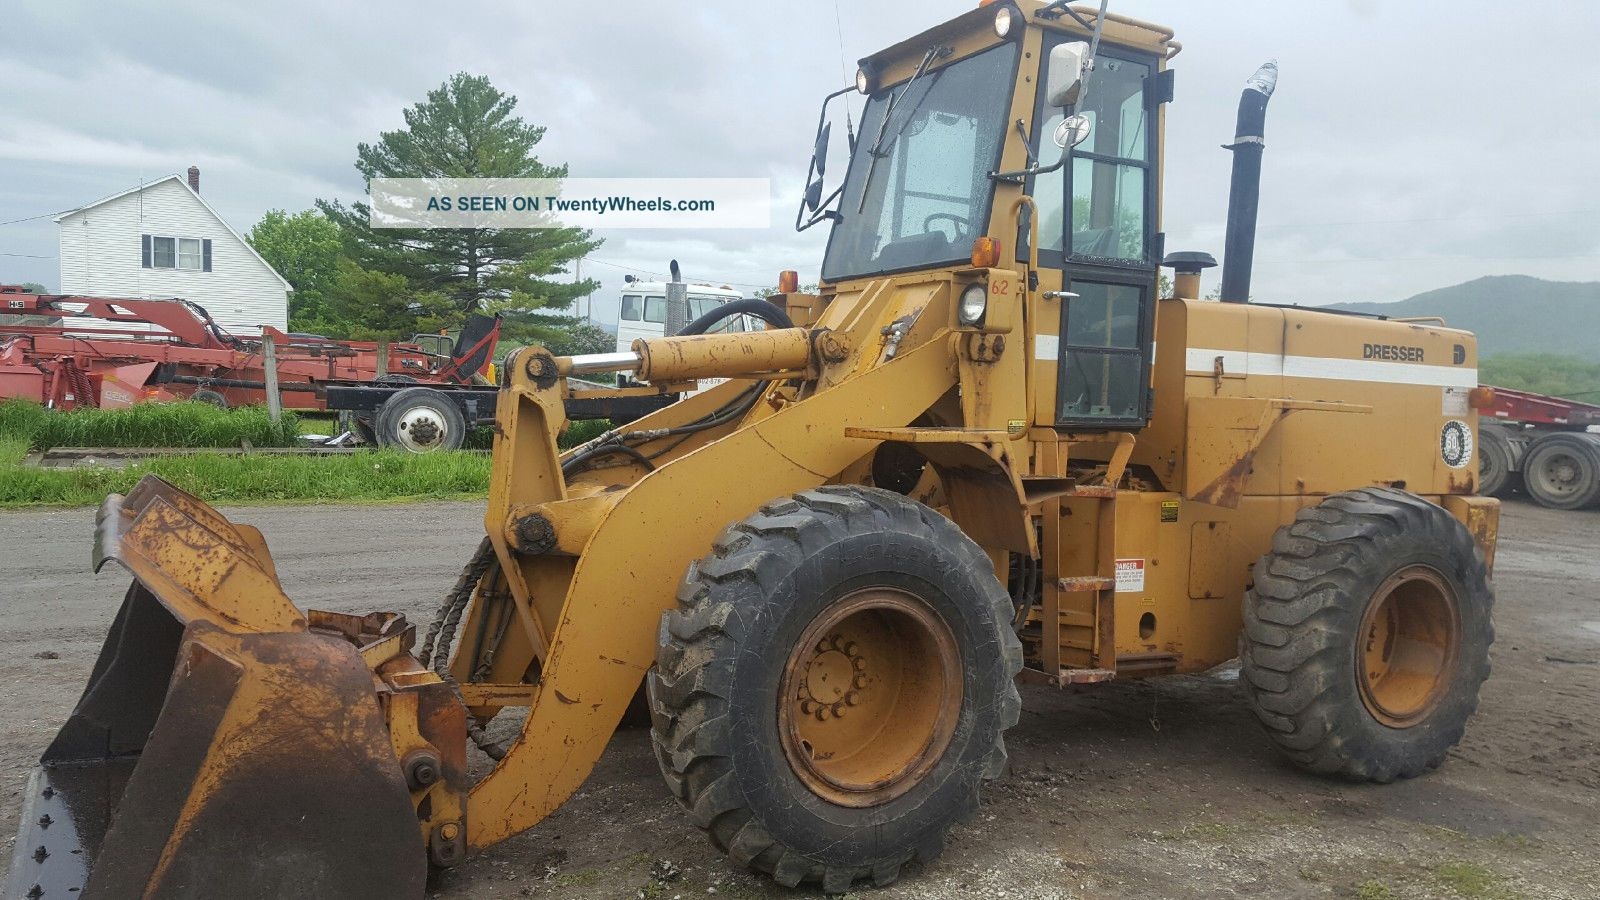 Dresser 520b Loader / Coupler And Aux.  Hydraulics Wheel Loaders photo